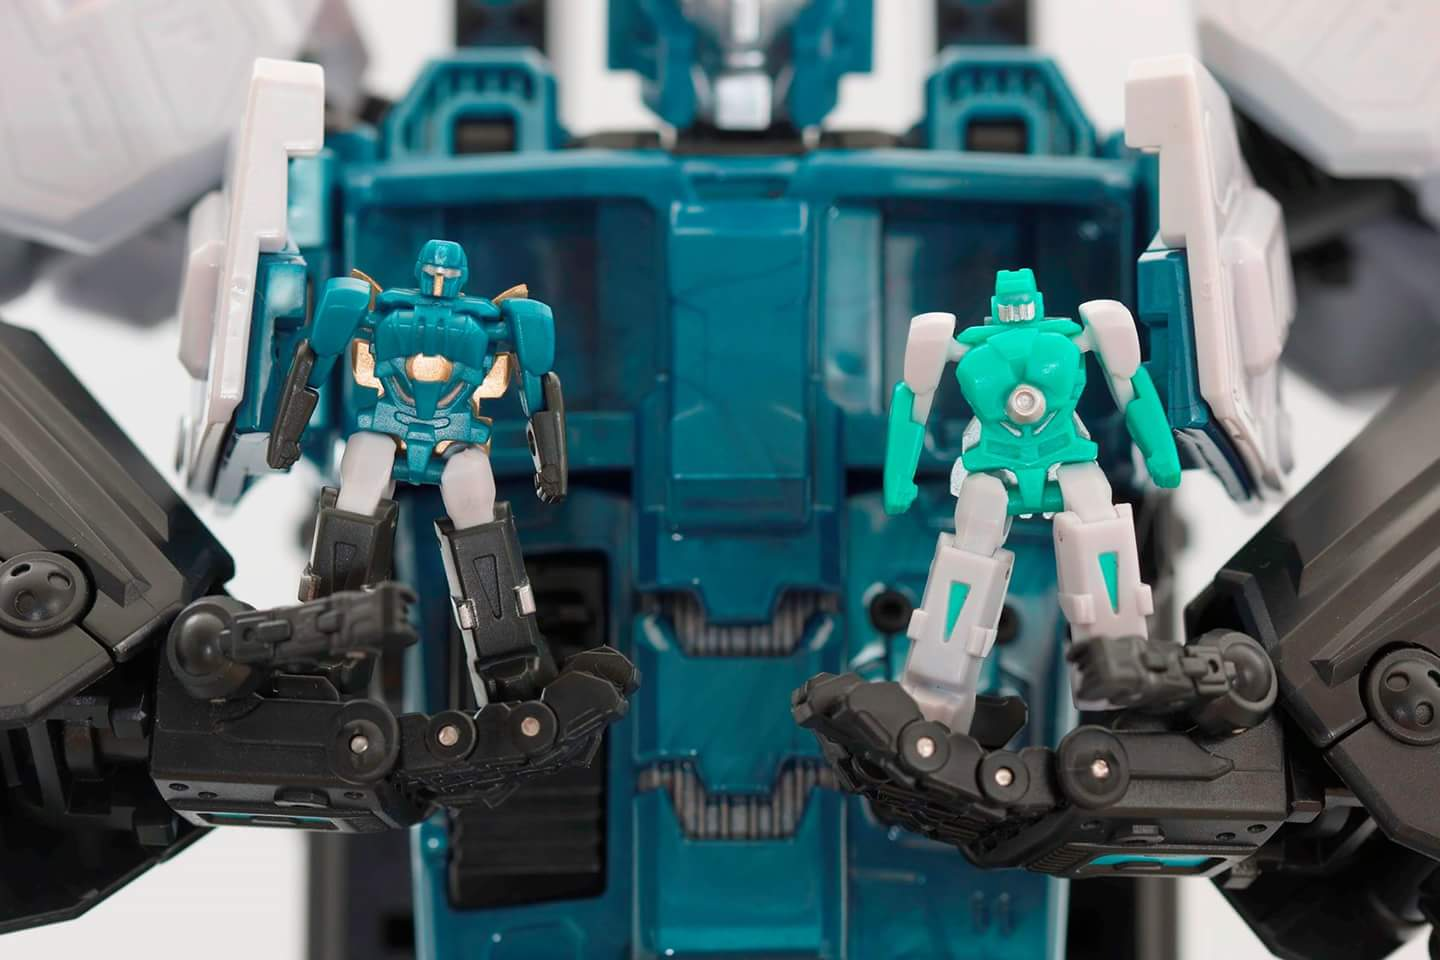 [Mastermind Creations] Produit Tiers - R-17 Carnifex - aka Overlord (TF Masterforce) - Page 3 ASA5kSMh